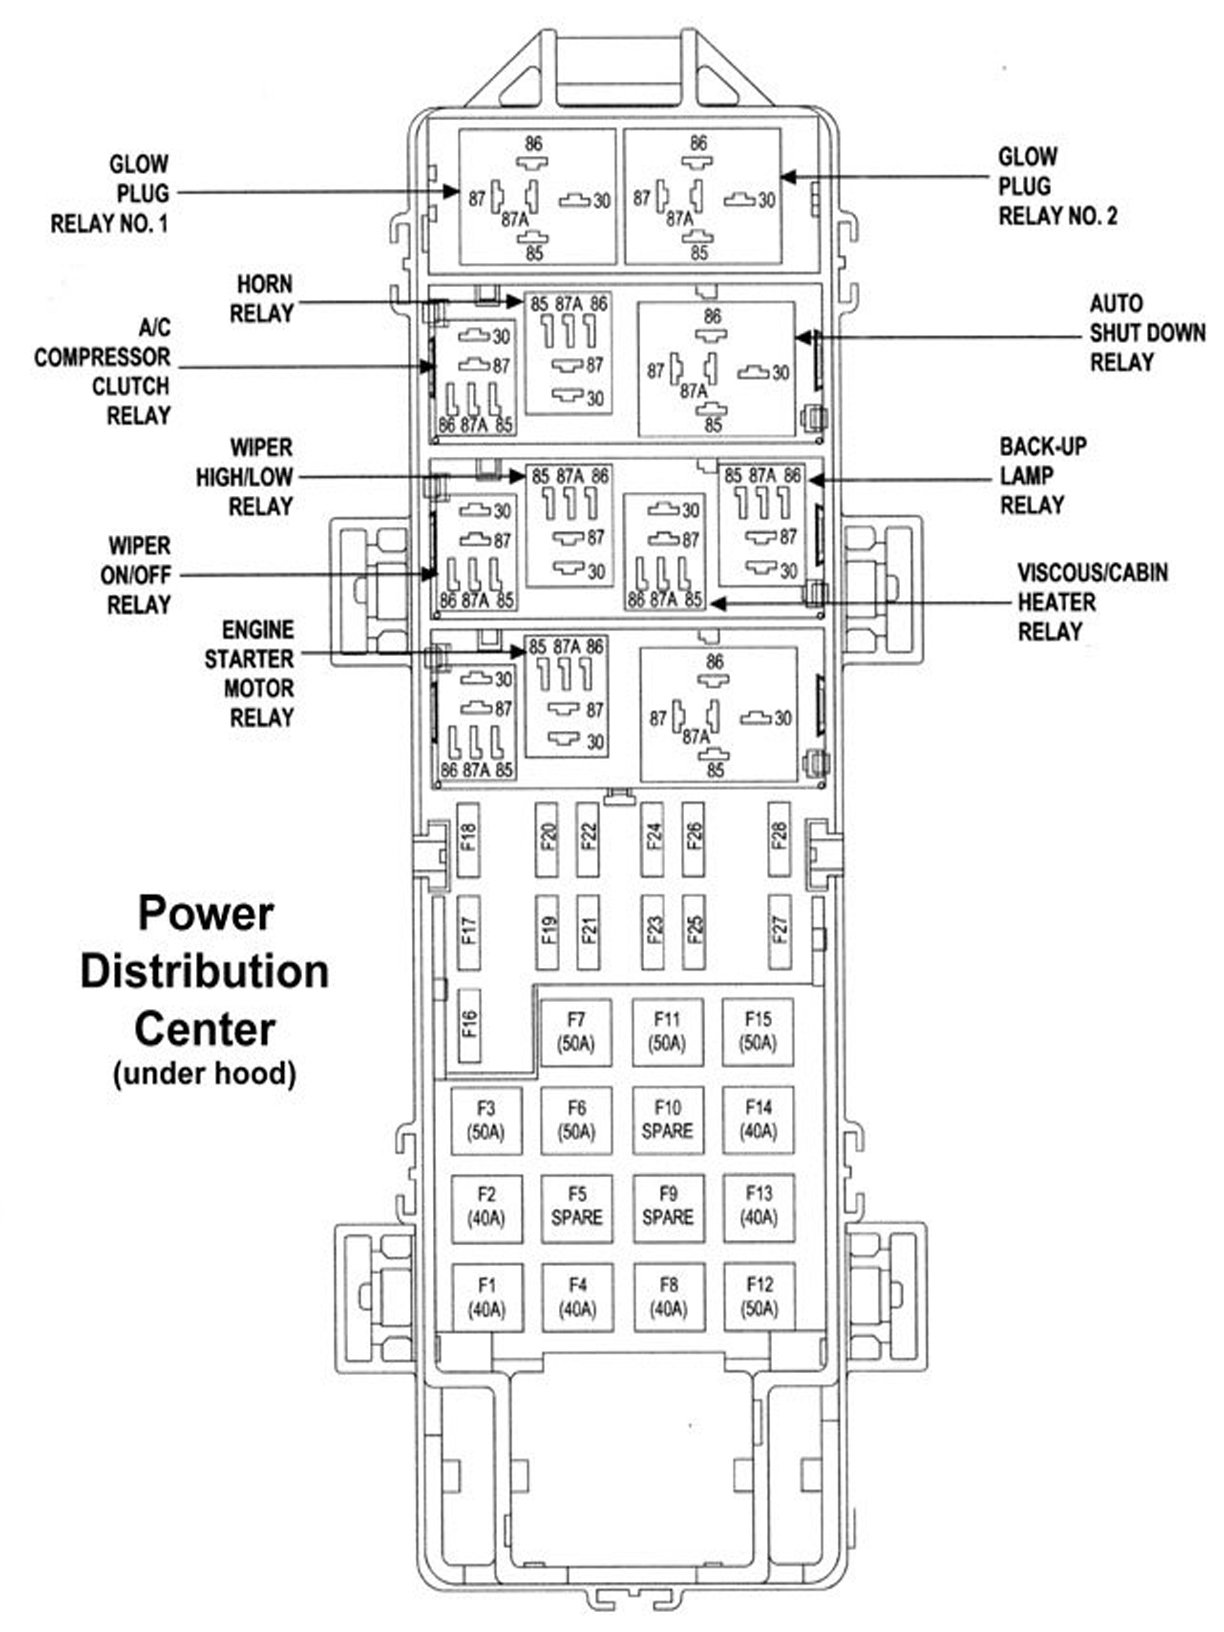 1998 Jeep Classic Fuse Box Private Sharing About Wiring Diagram Circuit Cherokee Connection U2022 Rh Mytechsupport Us